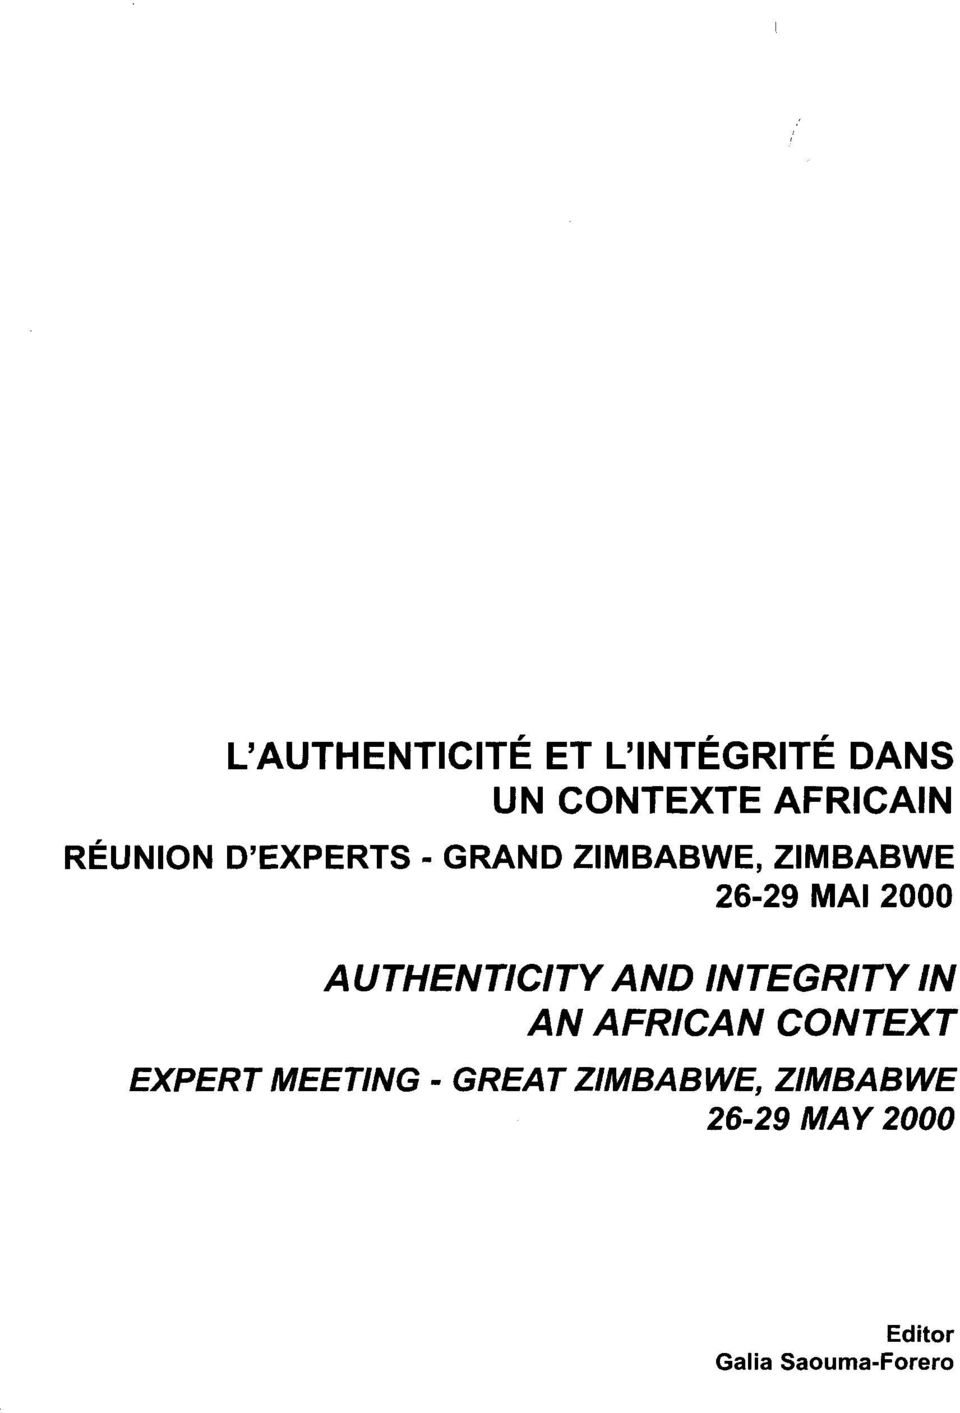 AUTHENTICITY AND INTEGRITY IN AN AFRICAN CONTEXT EXPERT